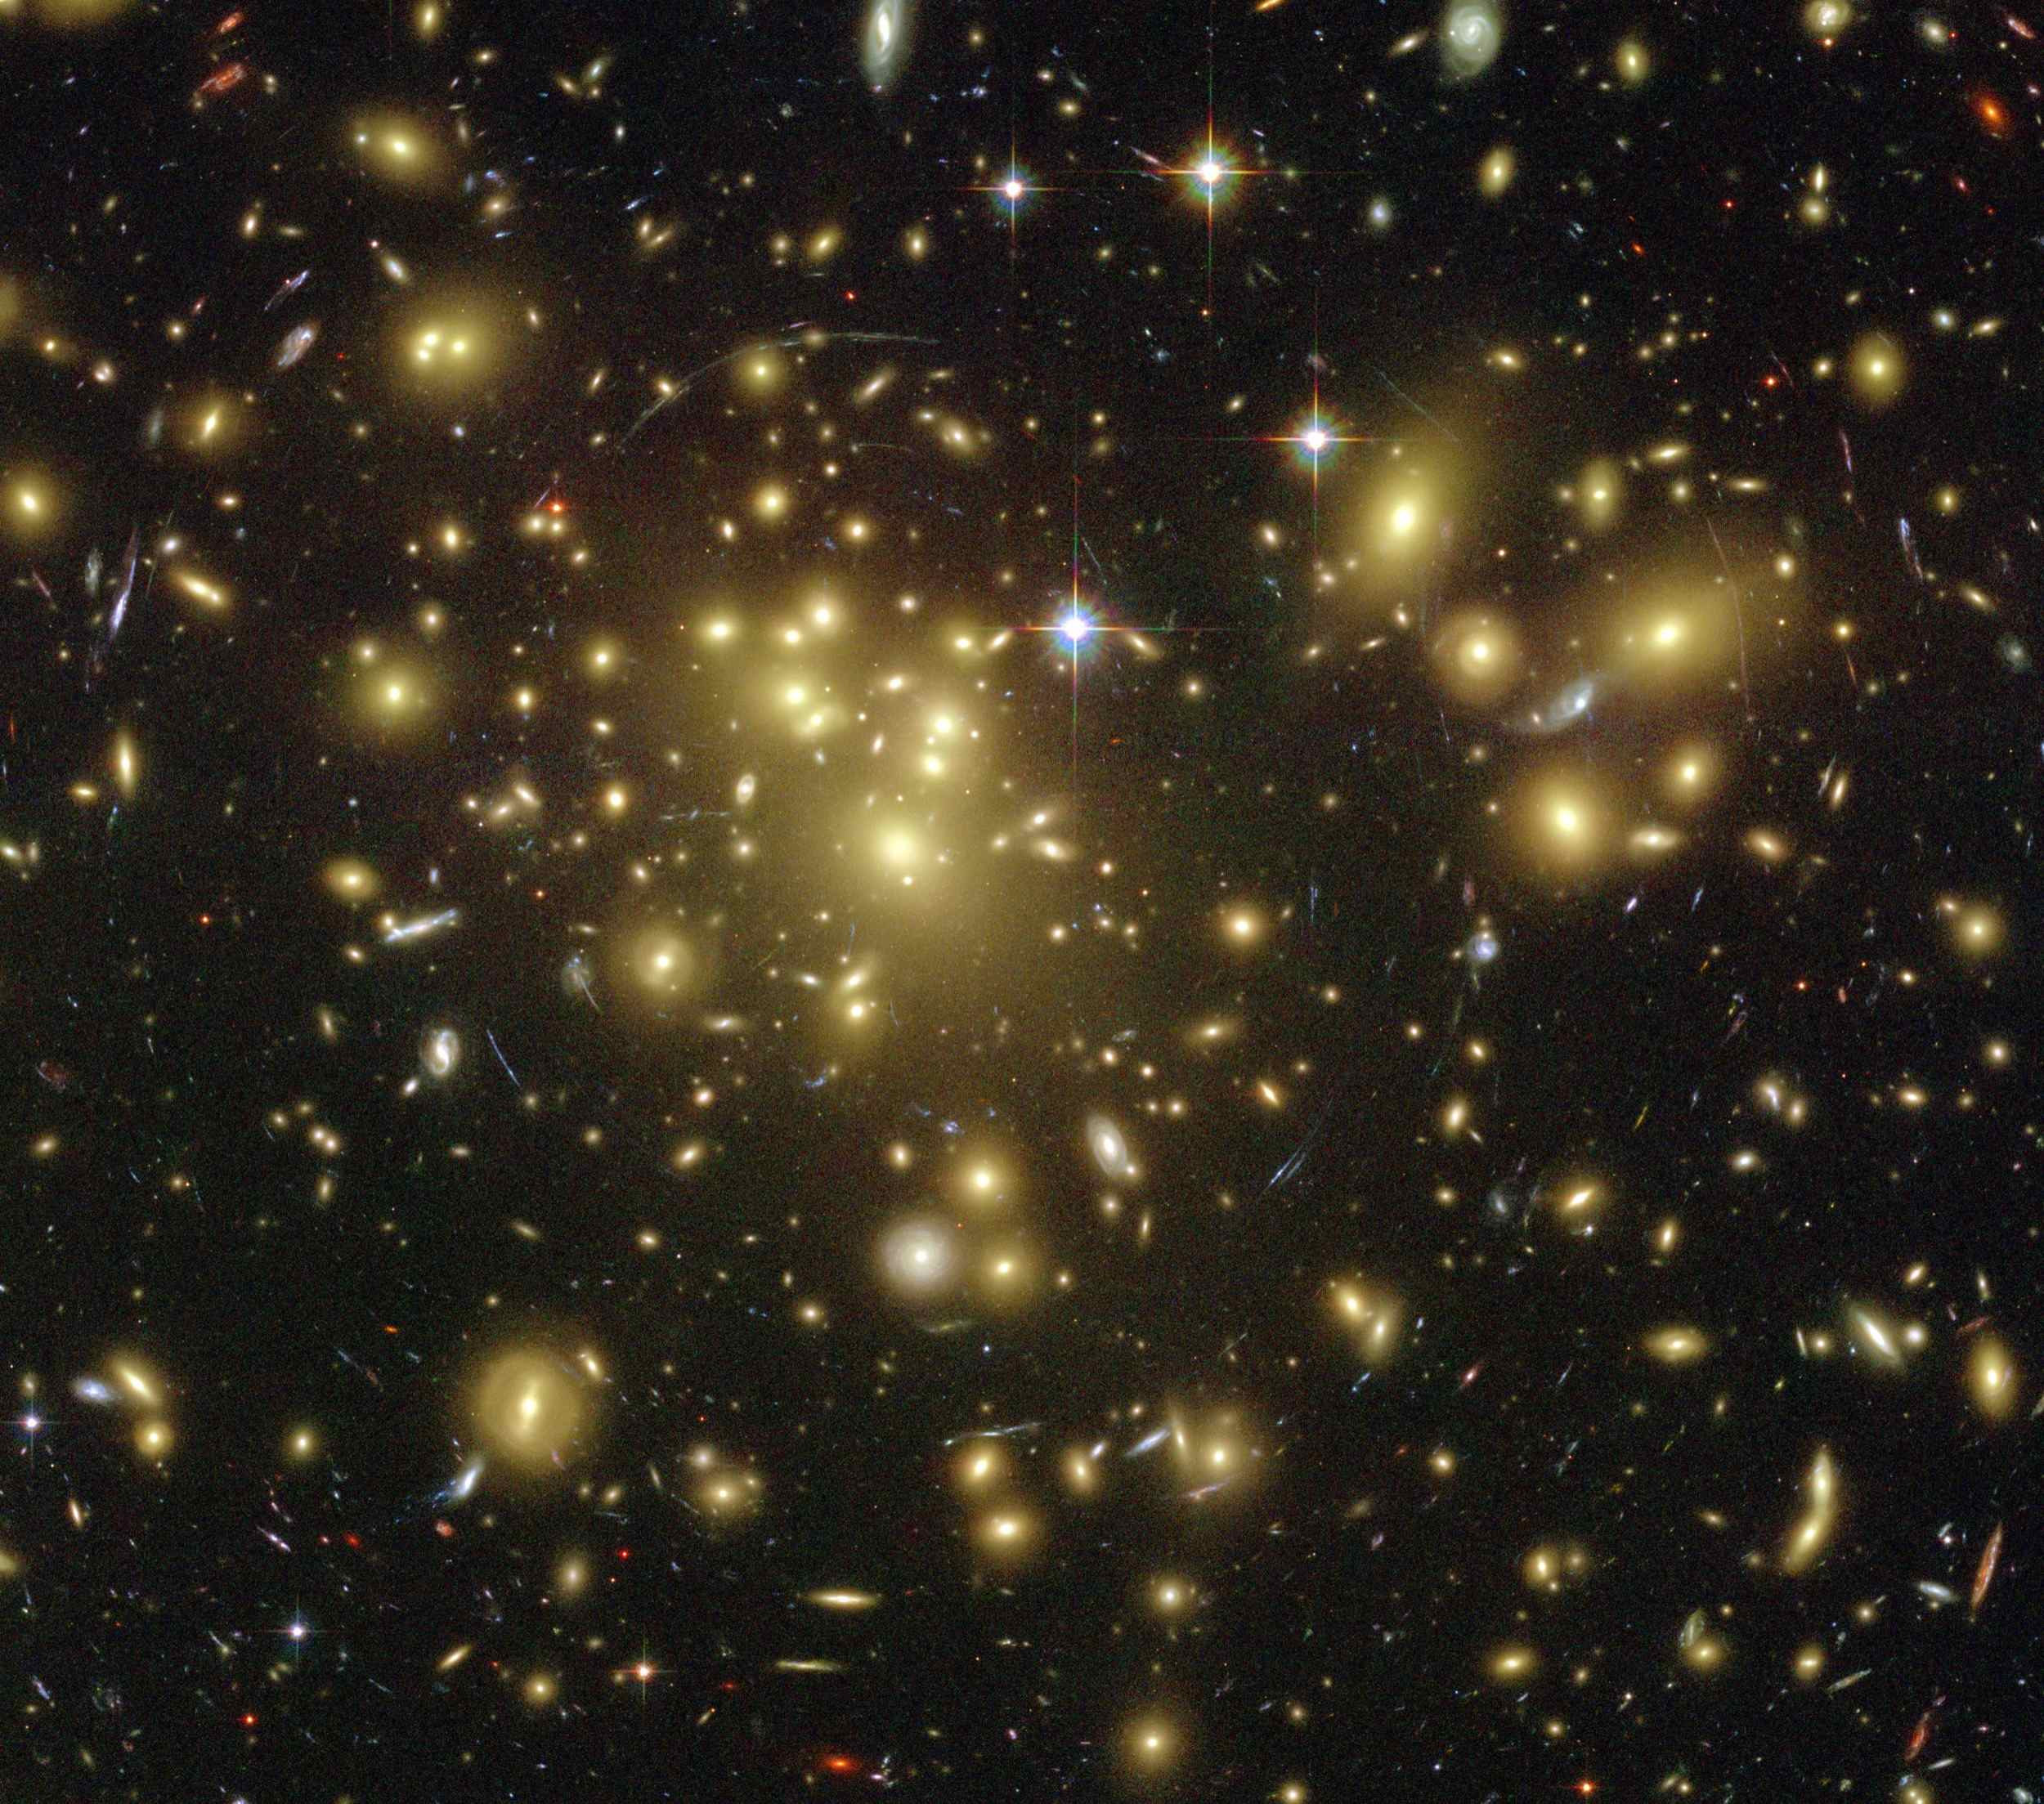 A massive cluster of yellowish galaxies is seemingly caught in a spider web of eerily distorted background galaxies in the left-hand image, taken with the Advanced Camera for Surveys (ACS) aboard NASA's Hubble Space Telescope.